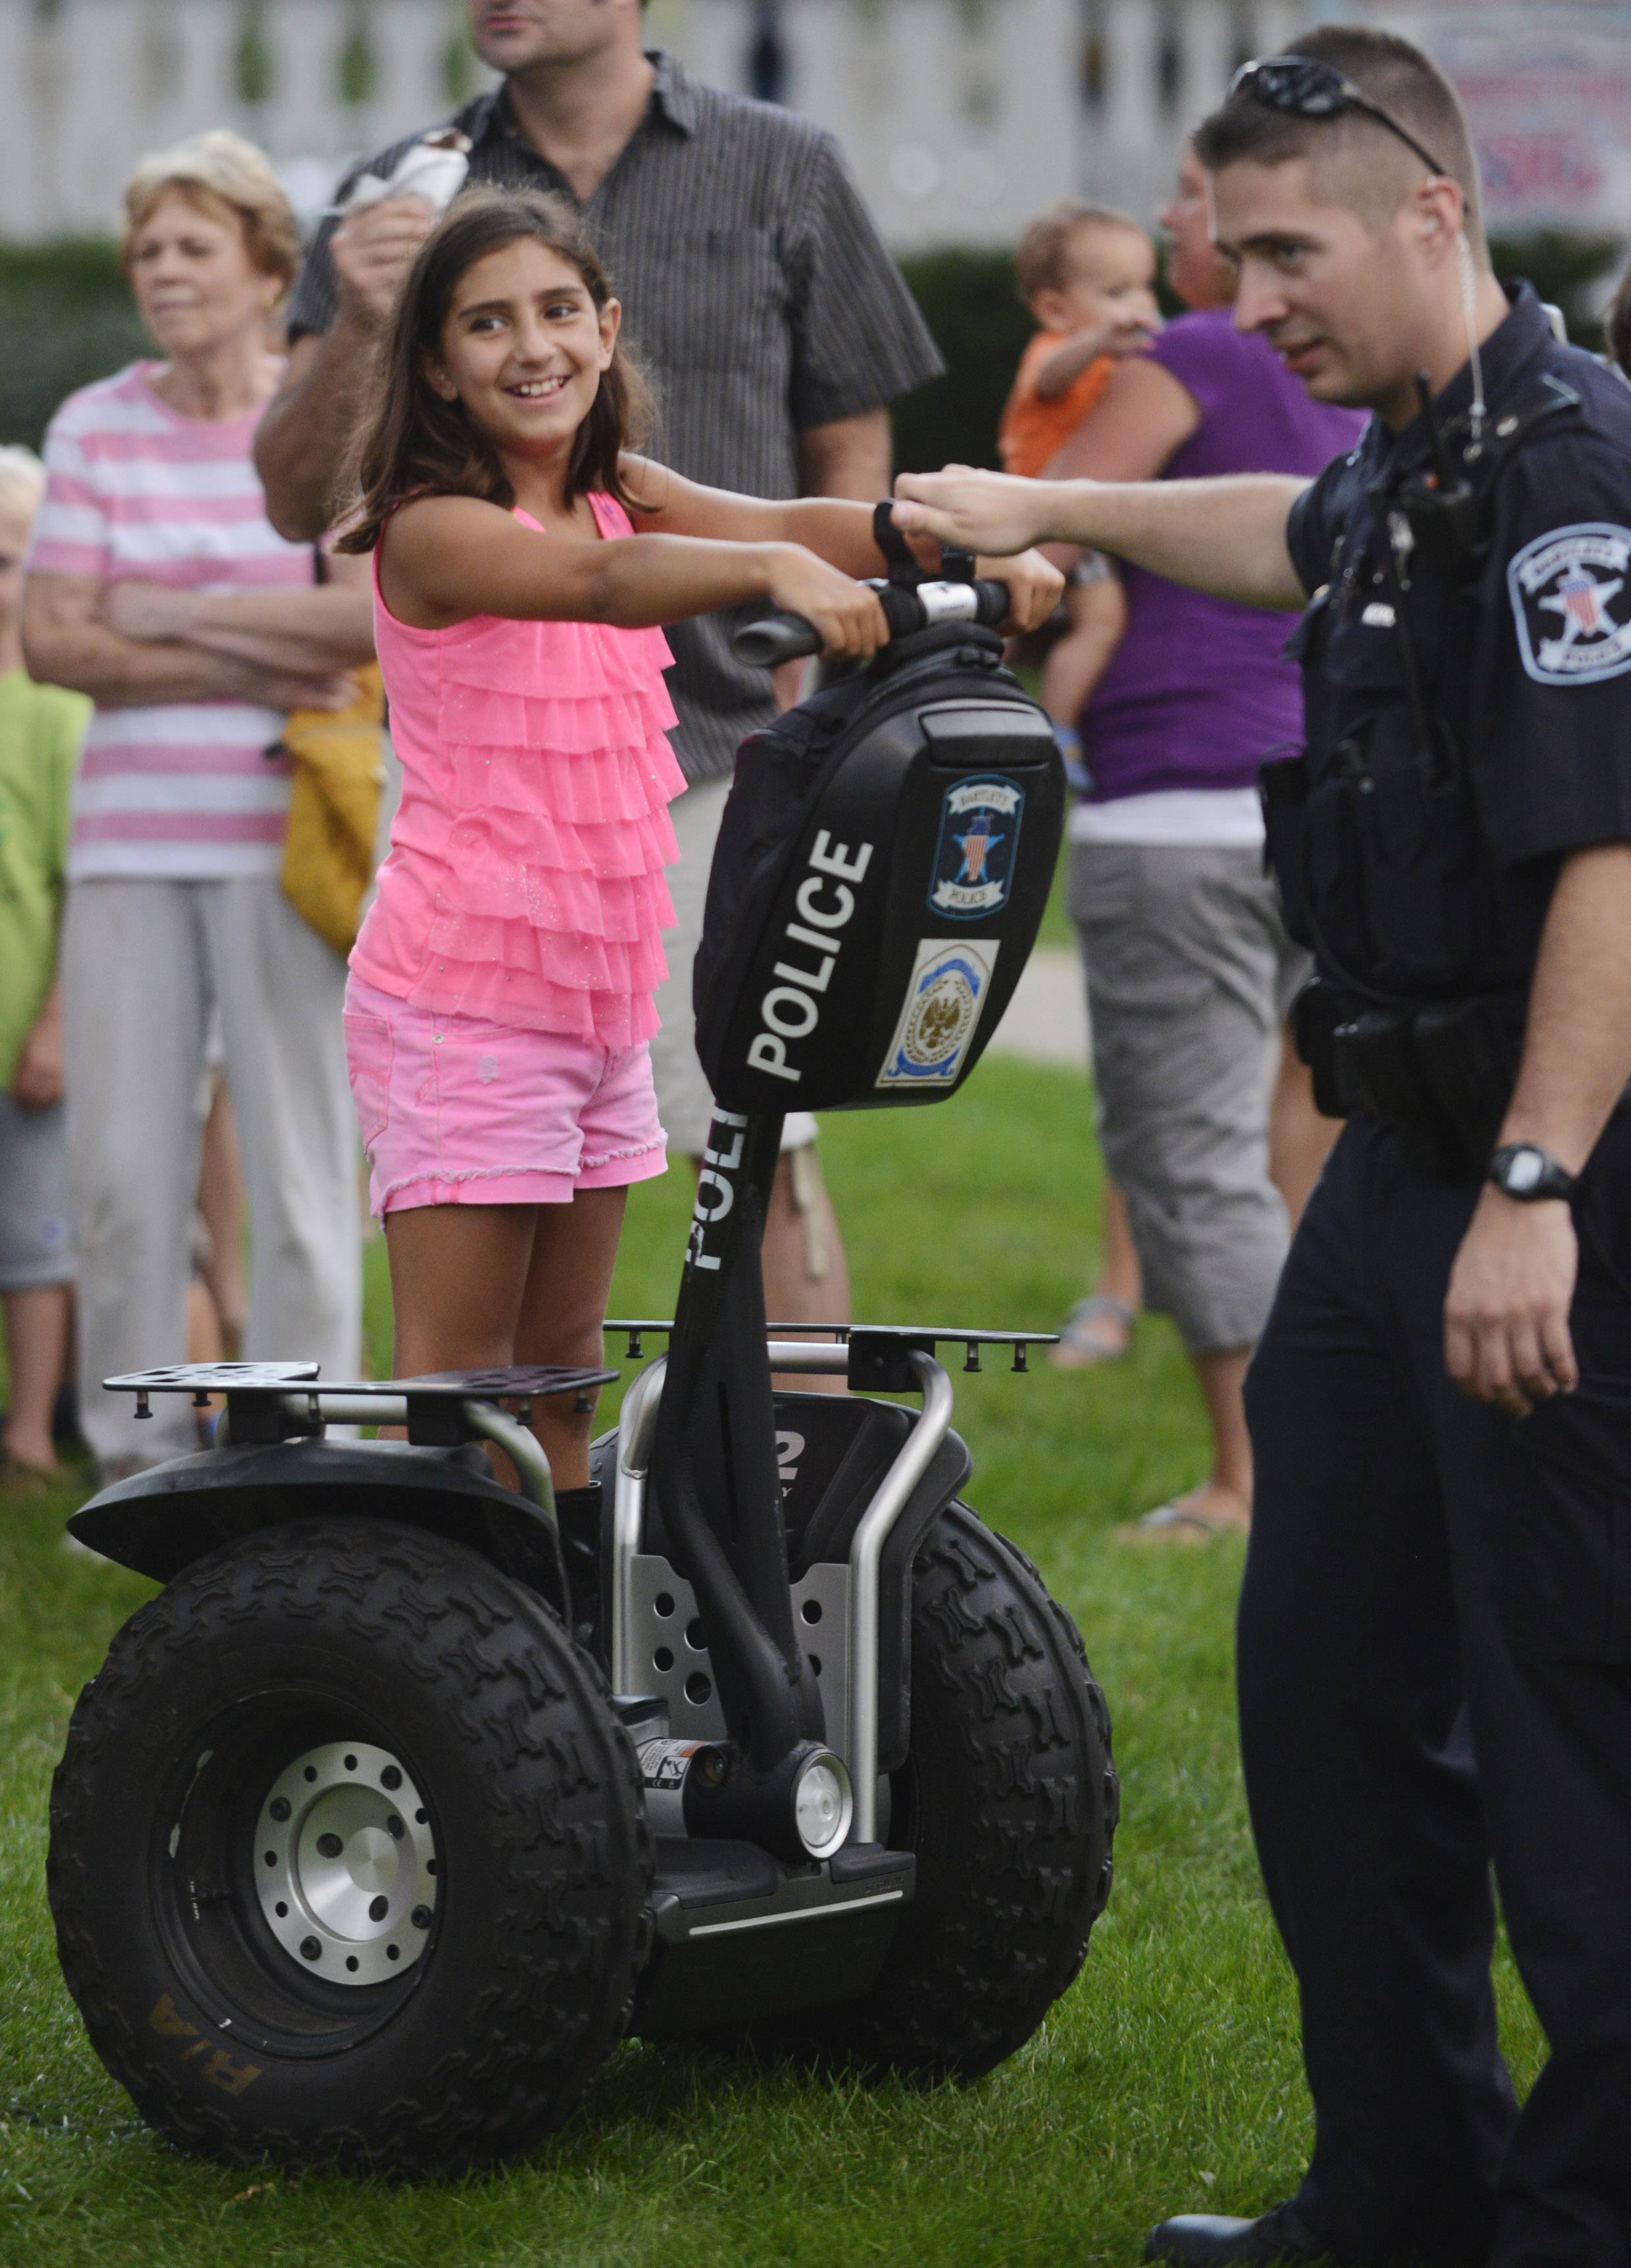 Kids can take a close look at Bartlett police department rides during the village's National Night Out celebration.